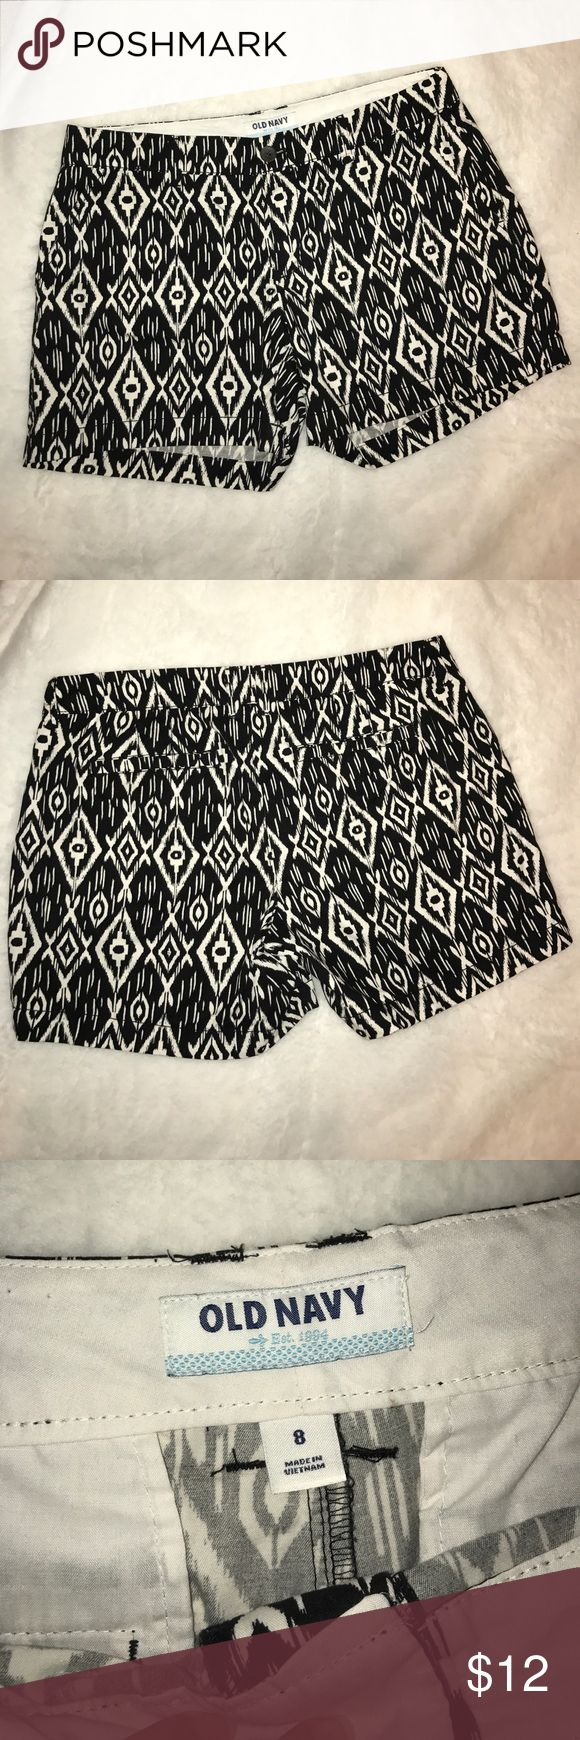 Black and White Aztec Print Shorts Black and White Aztec print Old Navy shorts. 100% cotton. Two front and back pockets. No stains. No stretch. In really good condition. Old Navy Shorts